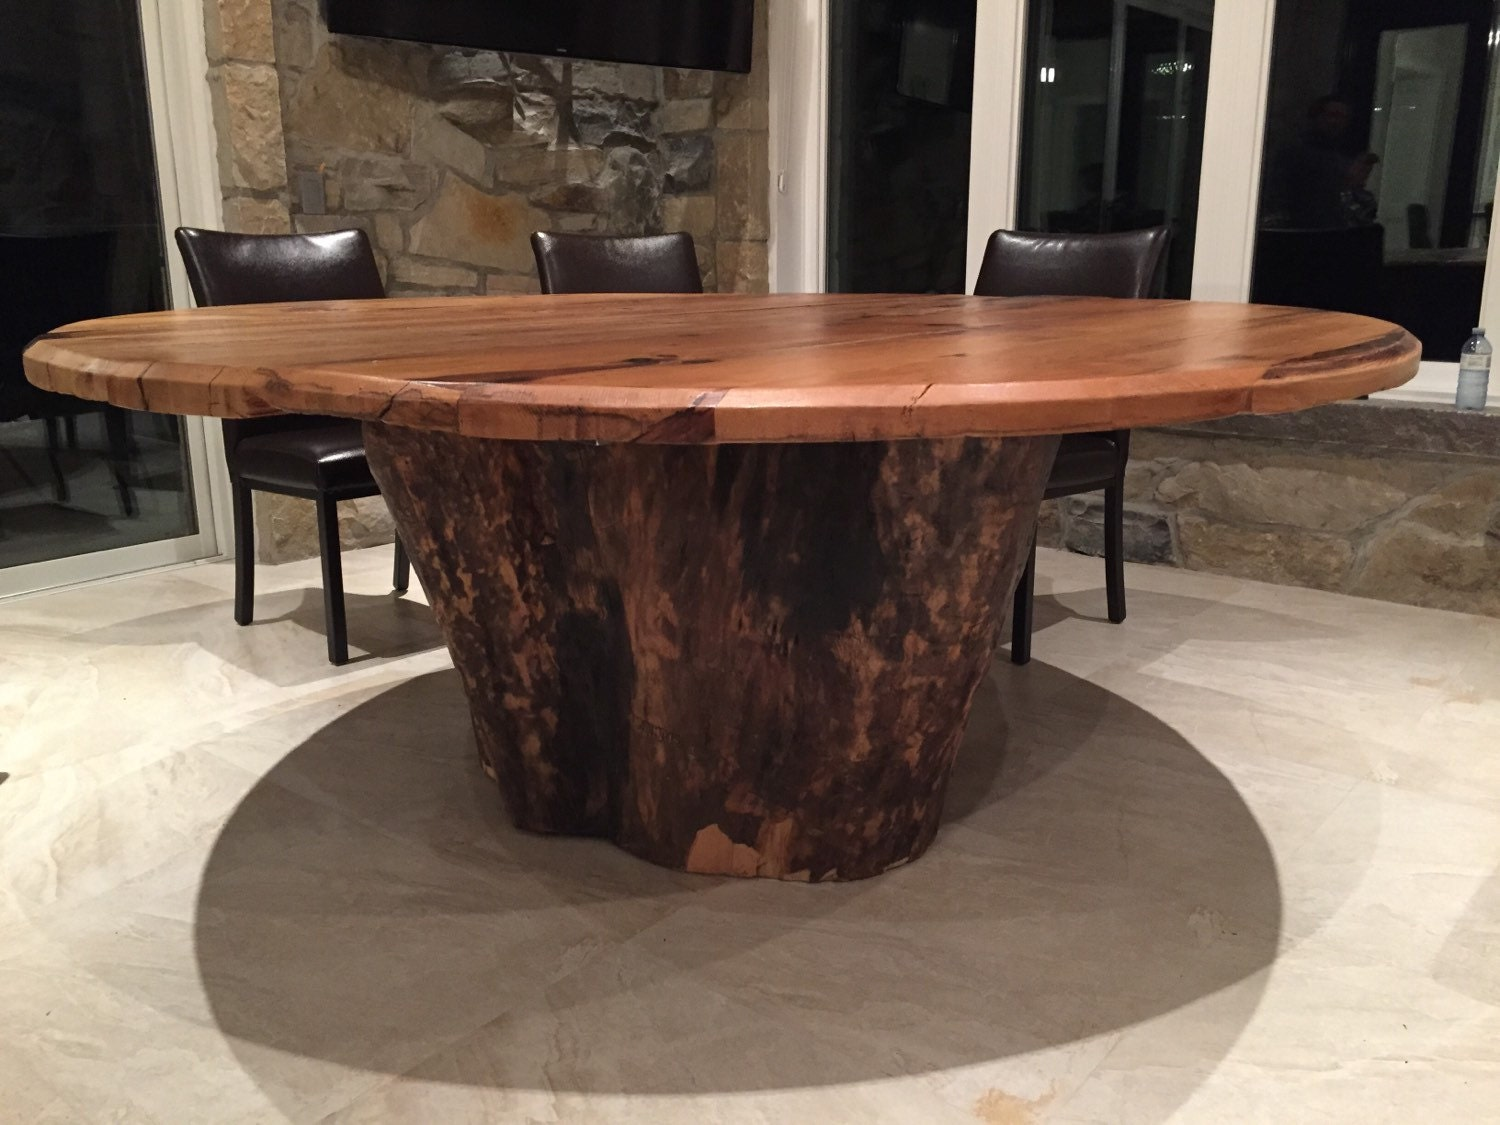 Live Edge Designs By Plank To Table Design Inc